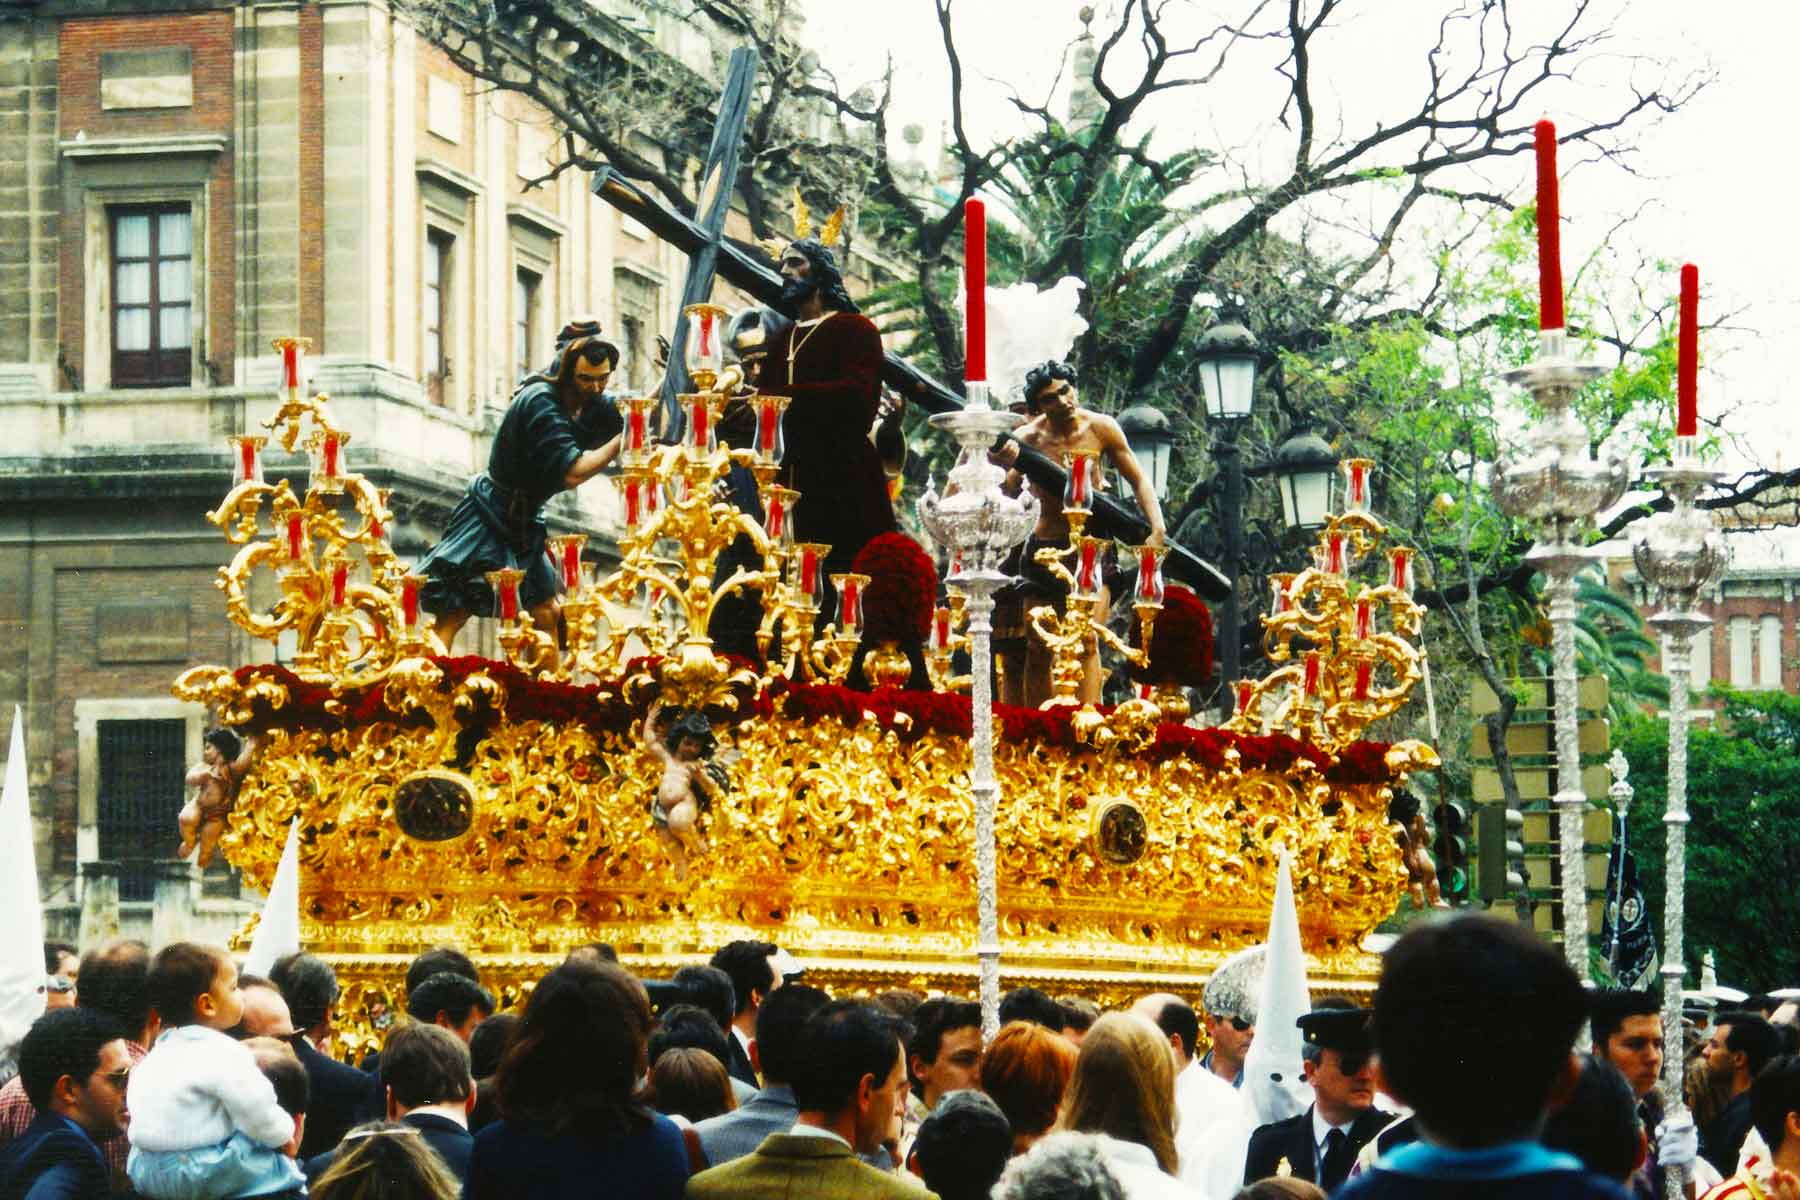 Paso - Semana Santa - Holy Week - Study Abroad journal - College Consortium International Studies - CCIS - Steven Andrew Martin